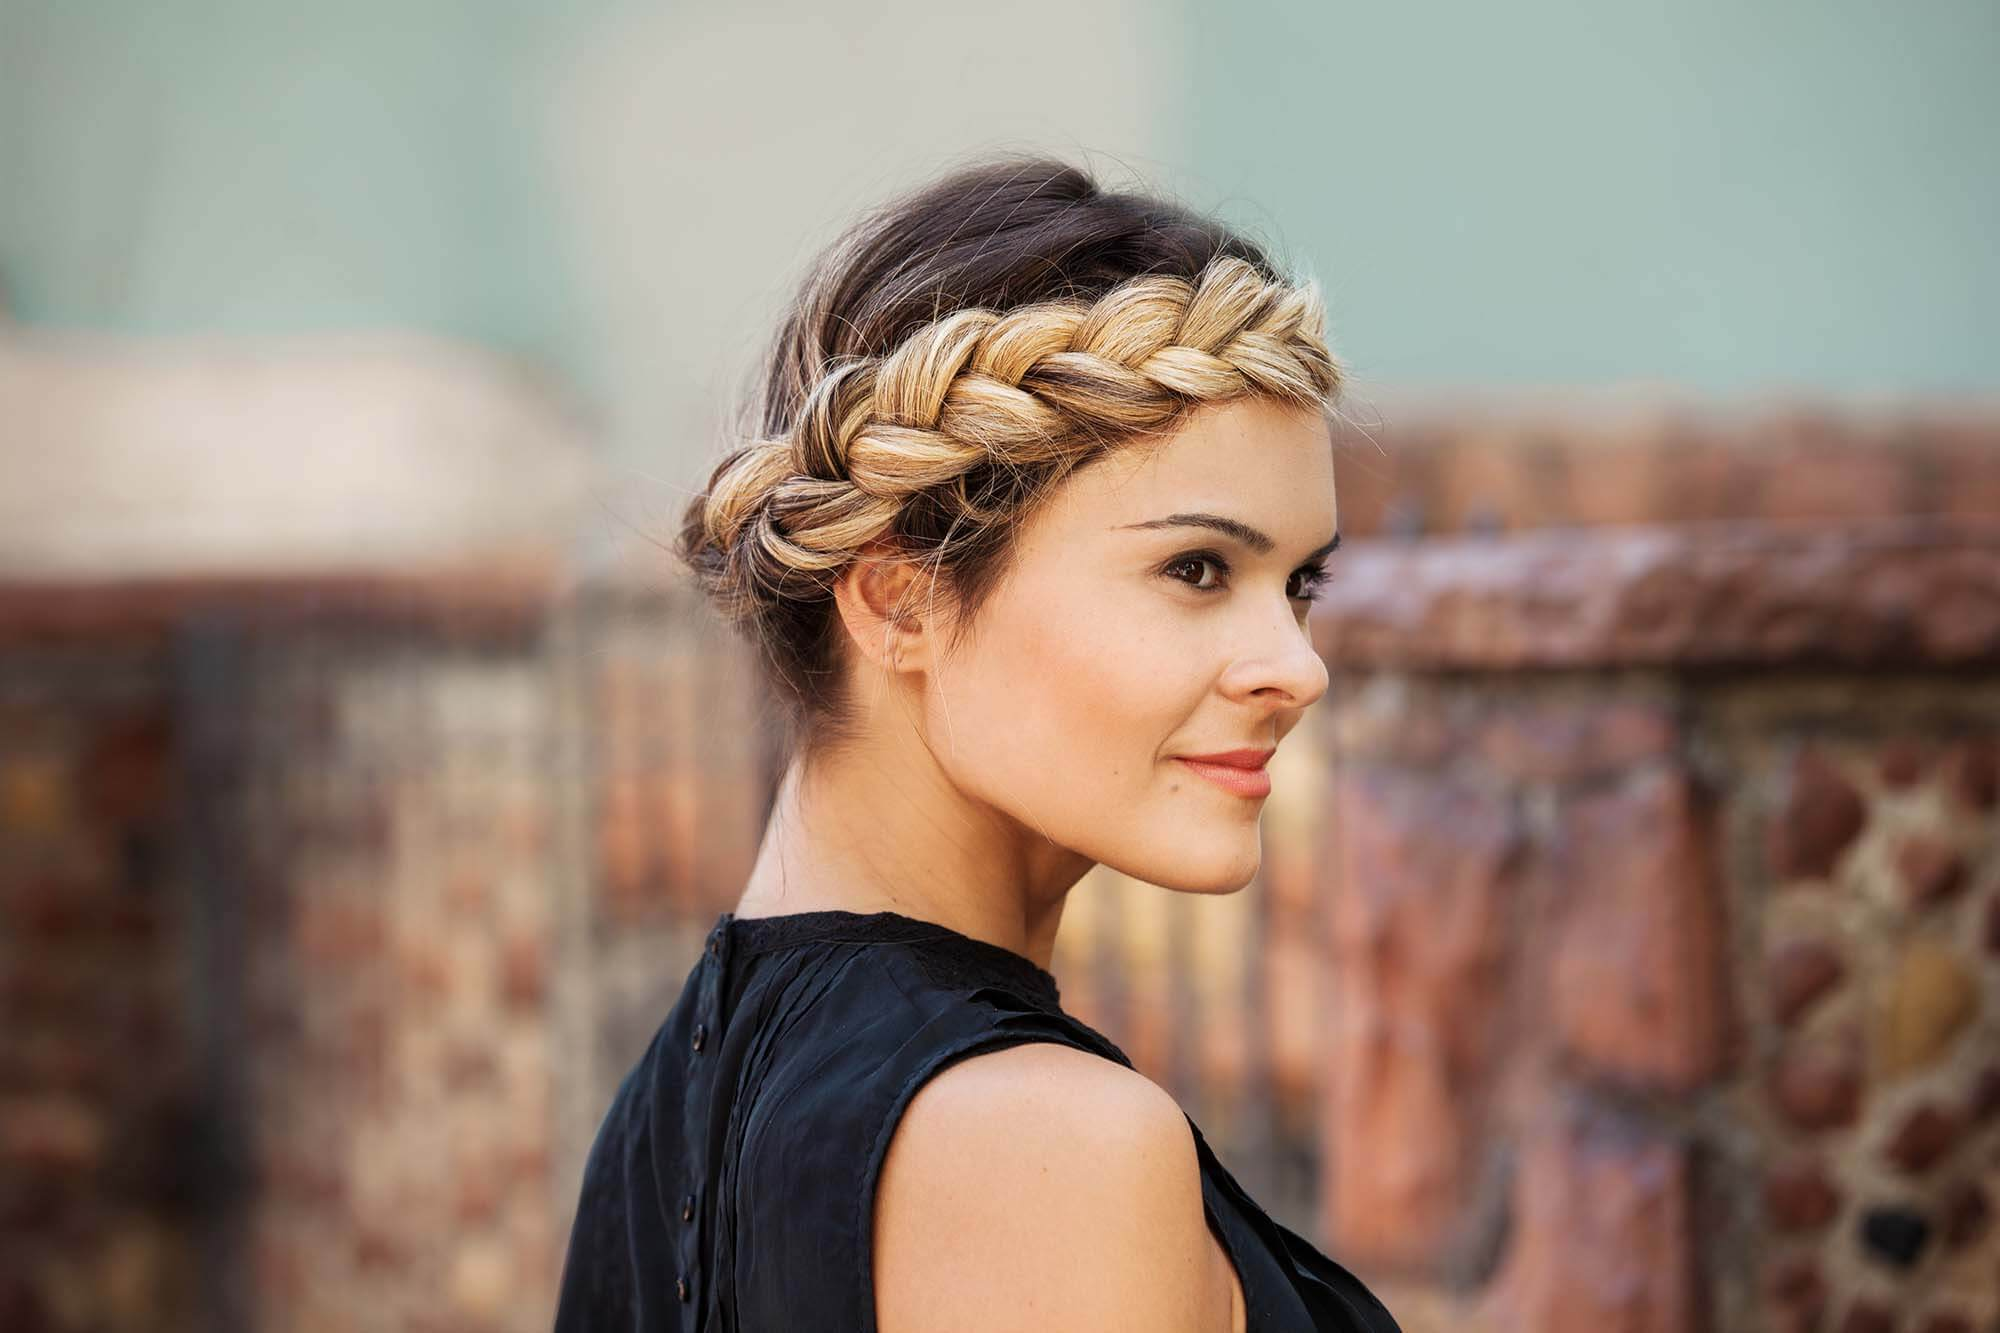 hair braiding: halo braid